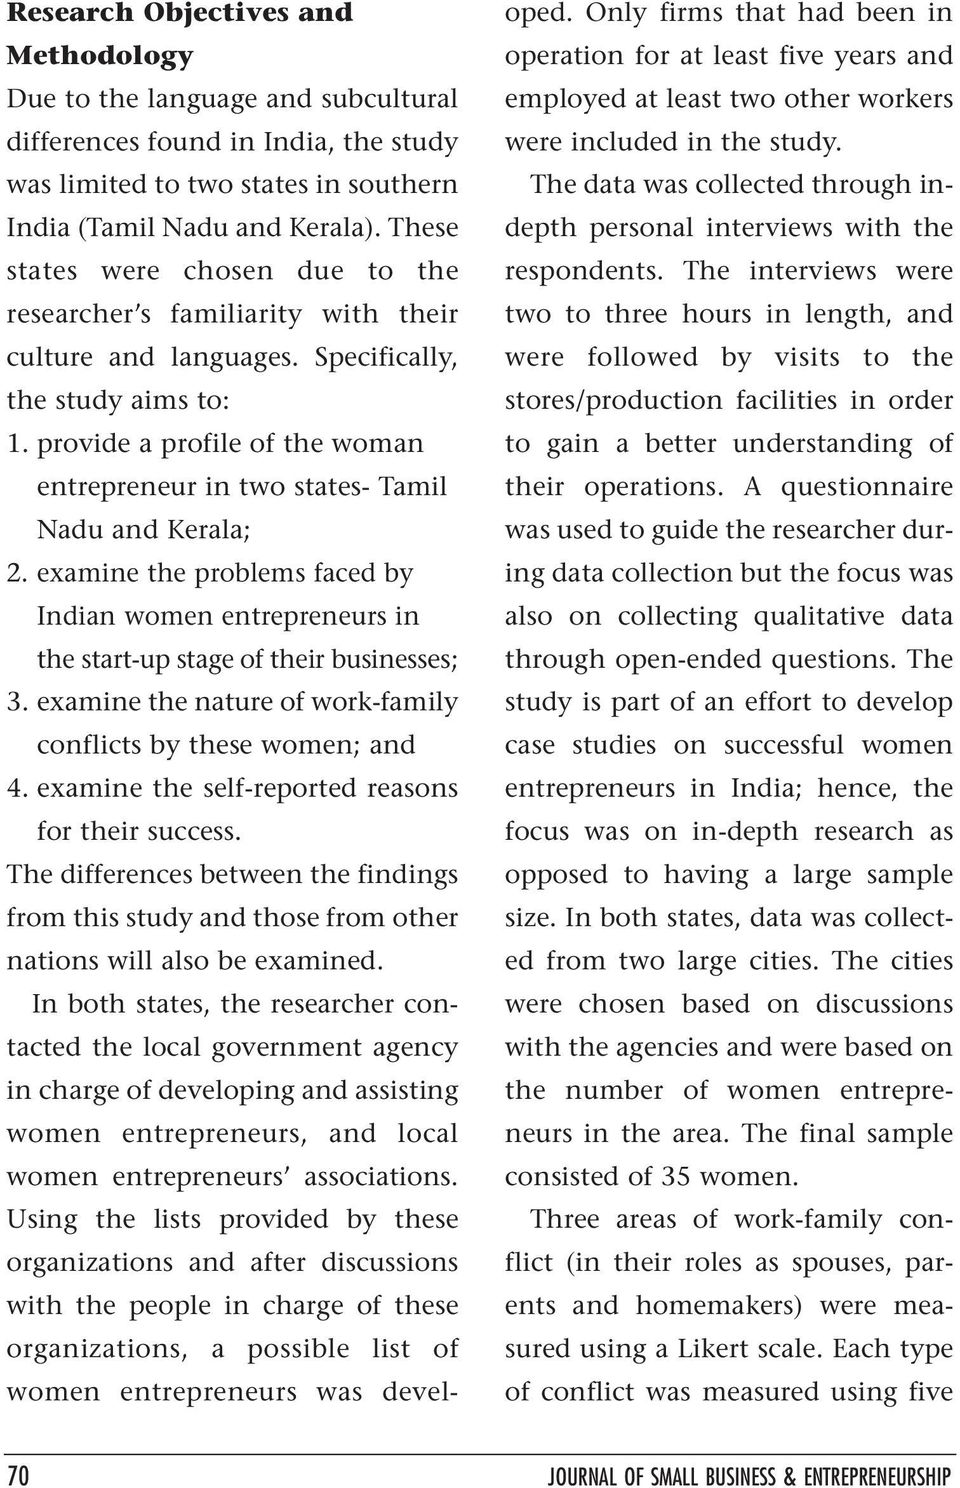 provide a profile of the woman entrepreneur in two states- Tamil Nadu and Kerala; 2. examine the problems faced by Indian women entrepreneurs in the start-up stage of their businesses; 3.